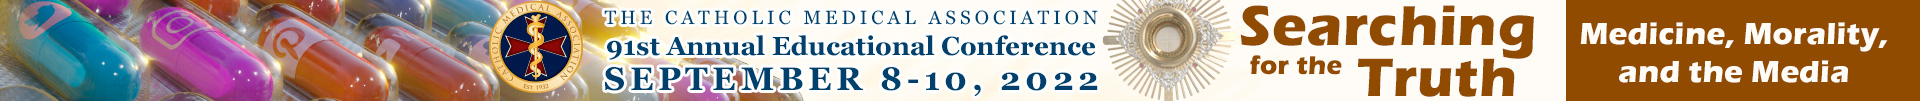 Catholic Medical Association's Annual Education Conference